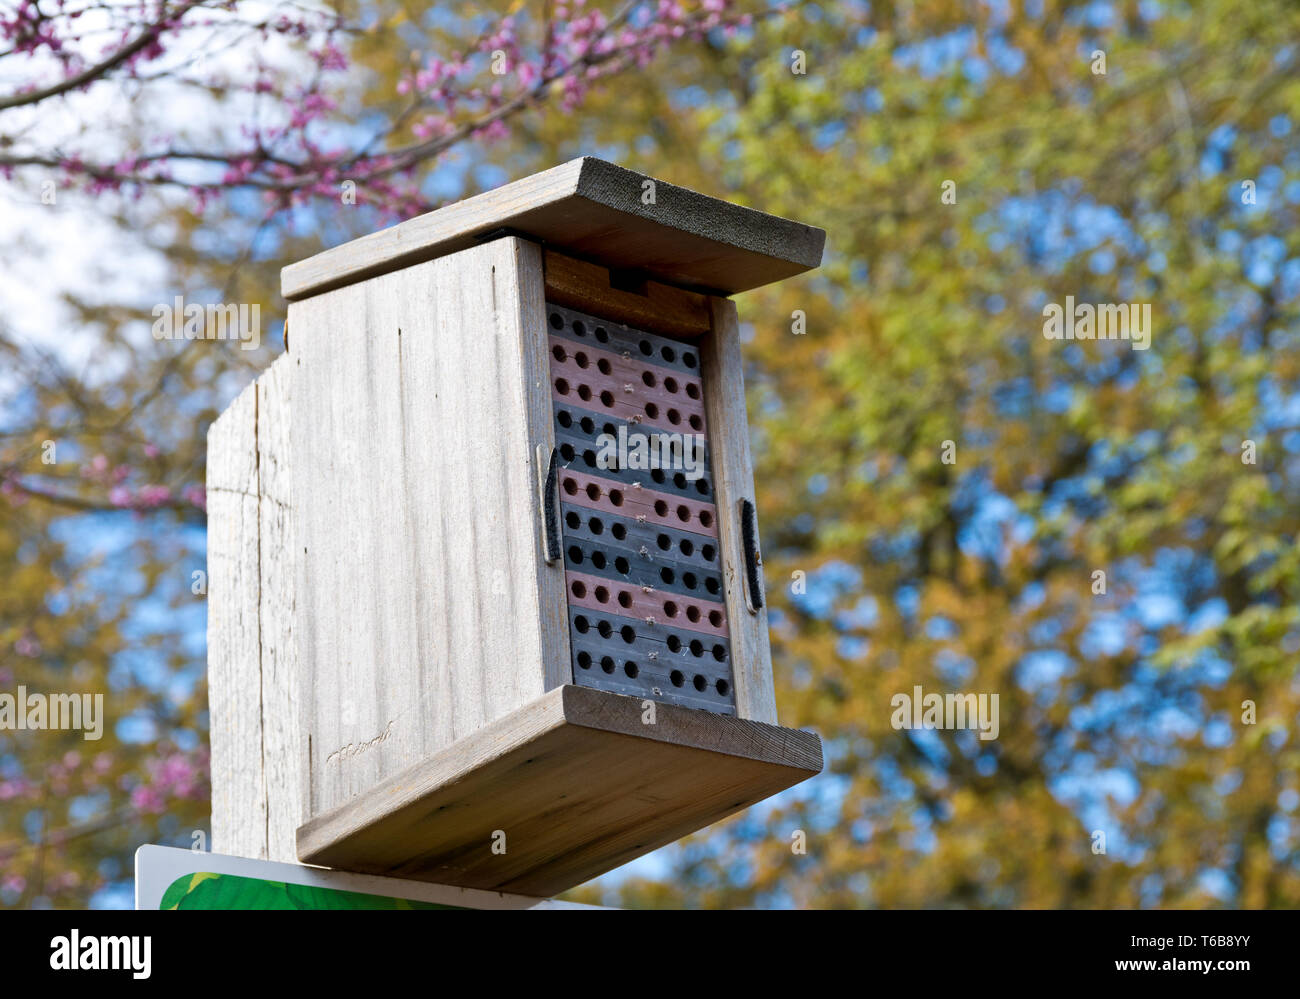 'Bee condo' erected in a park for Blue Orchard Mason bee.  Man made mason bee house, homes or habitat. - Stock Image